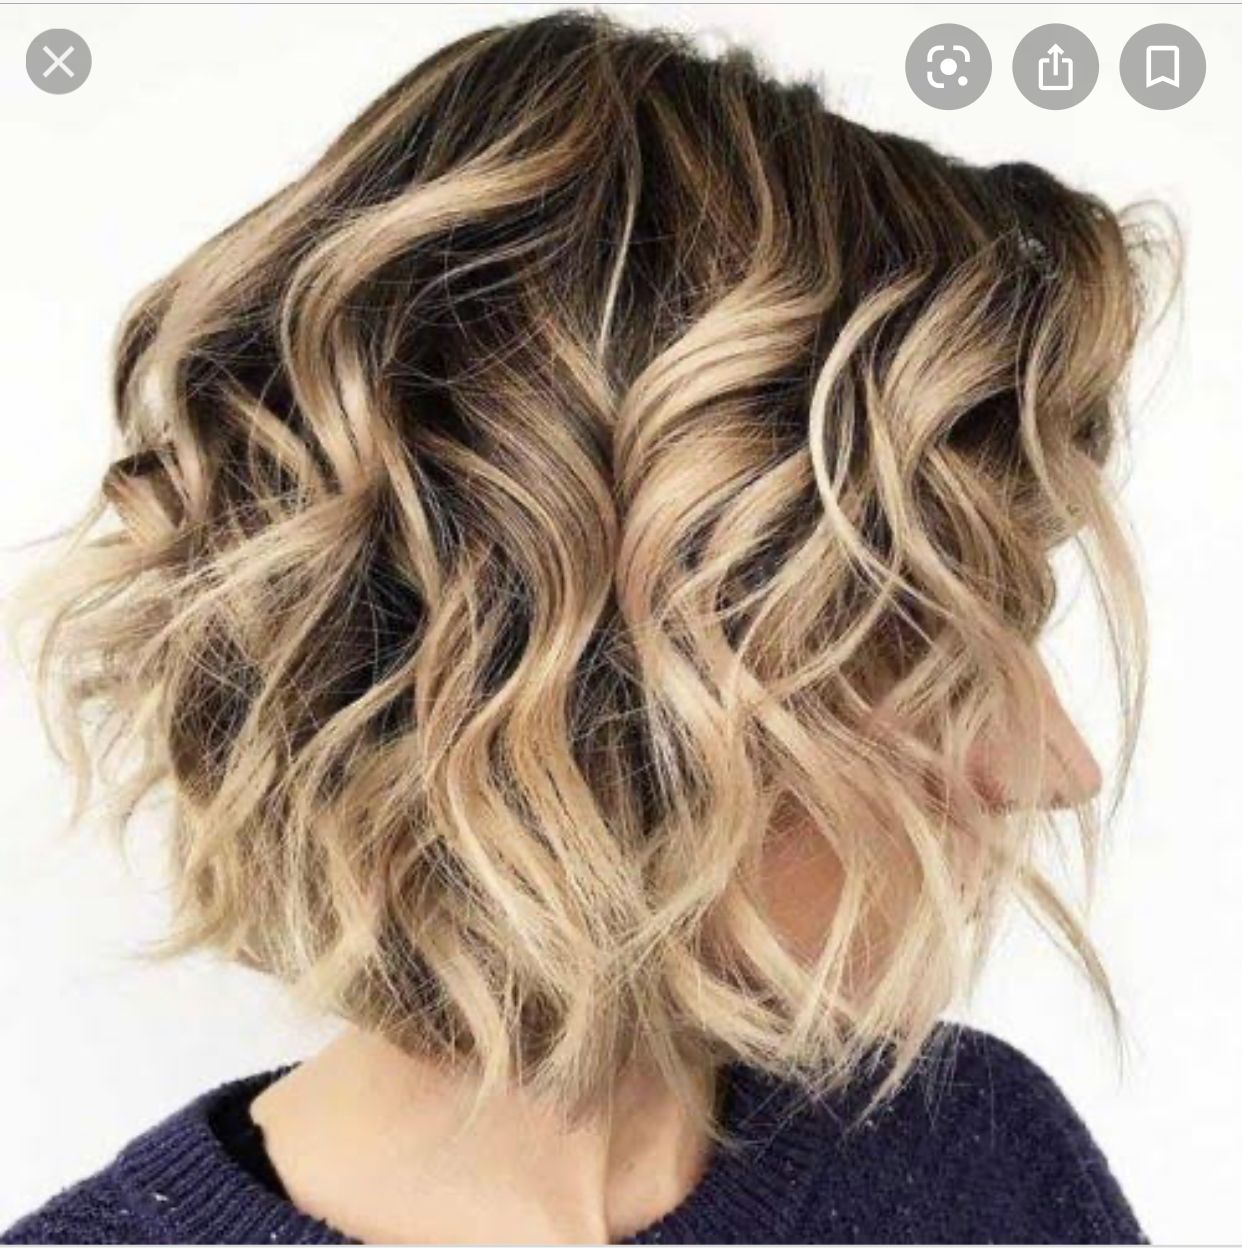 Pin By Peggy Sindric On Hair In 2020 Short Hair Waves Messy Waves Short Hair Beach Waves For Short Hair